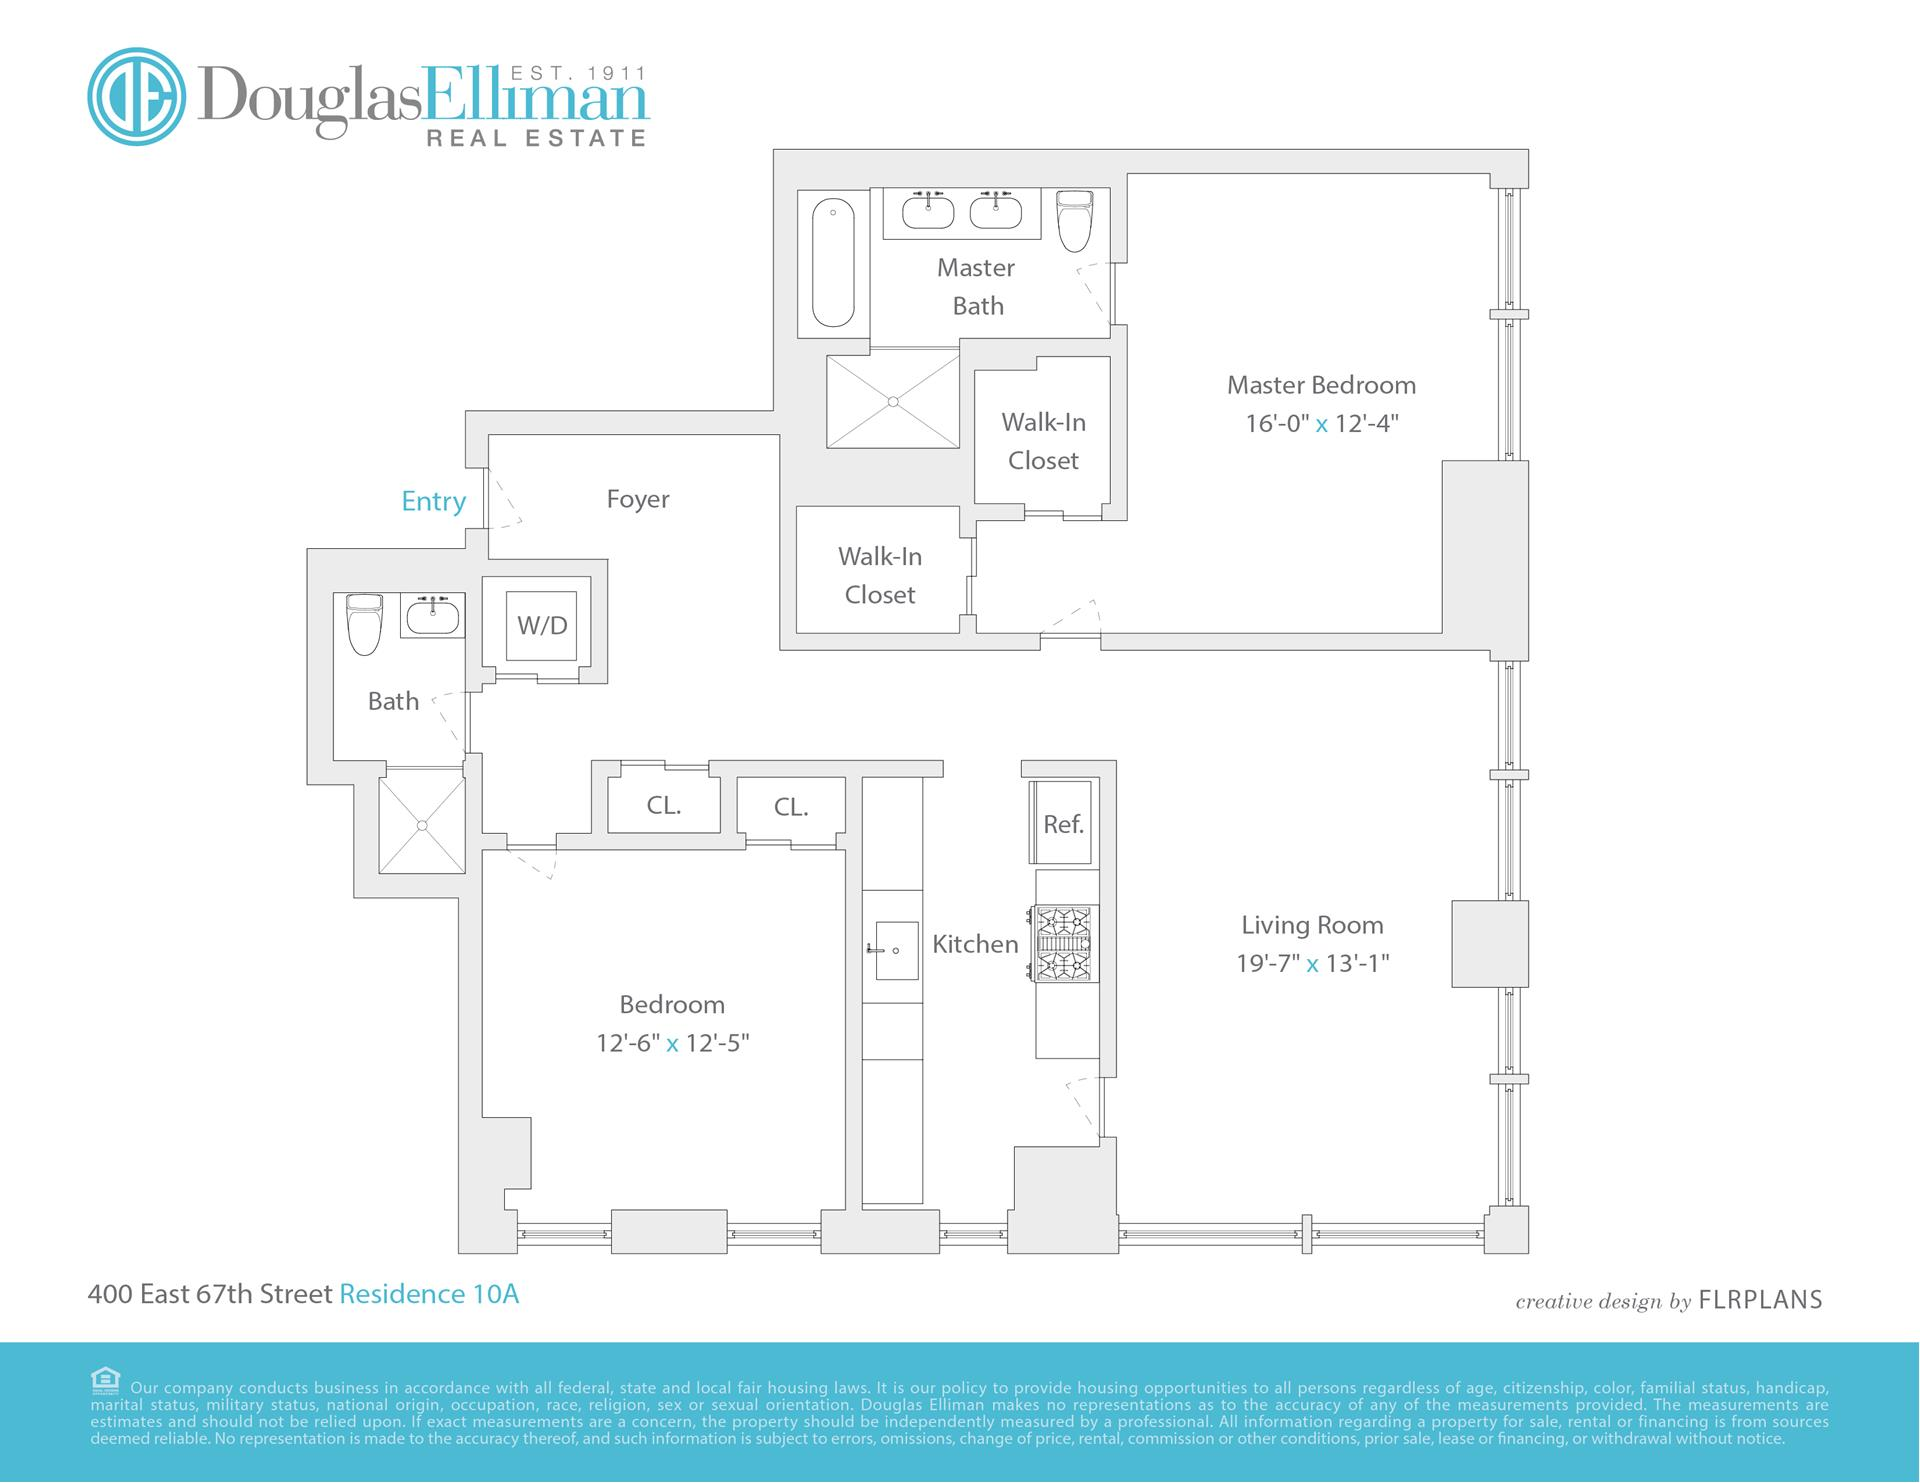 Floor plan of The Laurel, 400 East 67th St, 10A - Upper East Side, New York